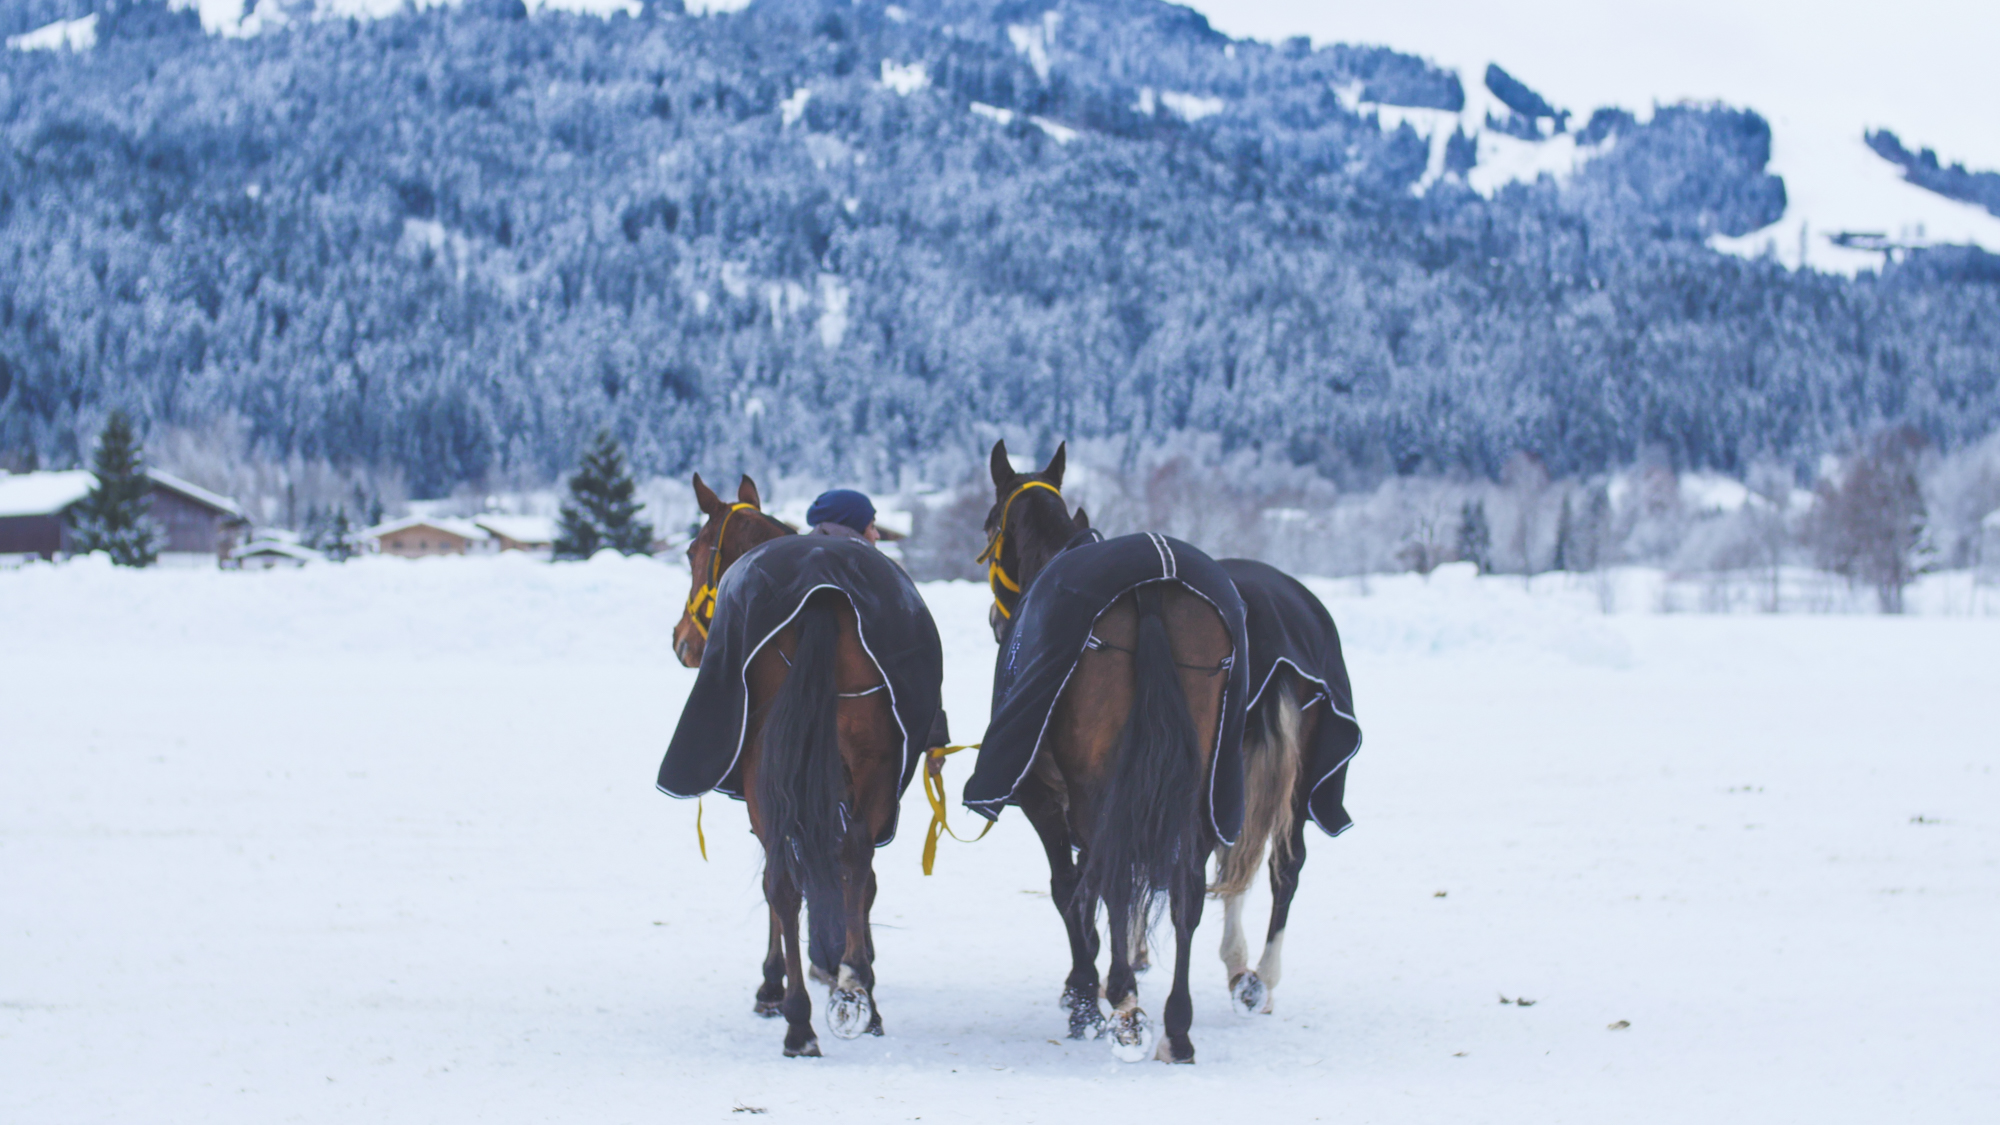 snow polo horses take a break between games in the mountains of Austria